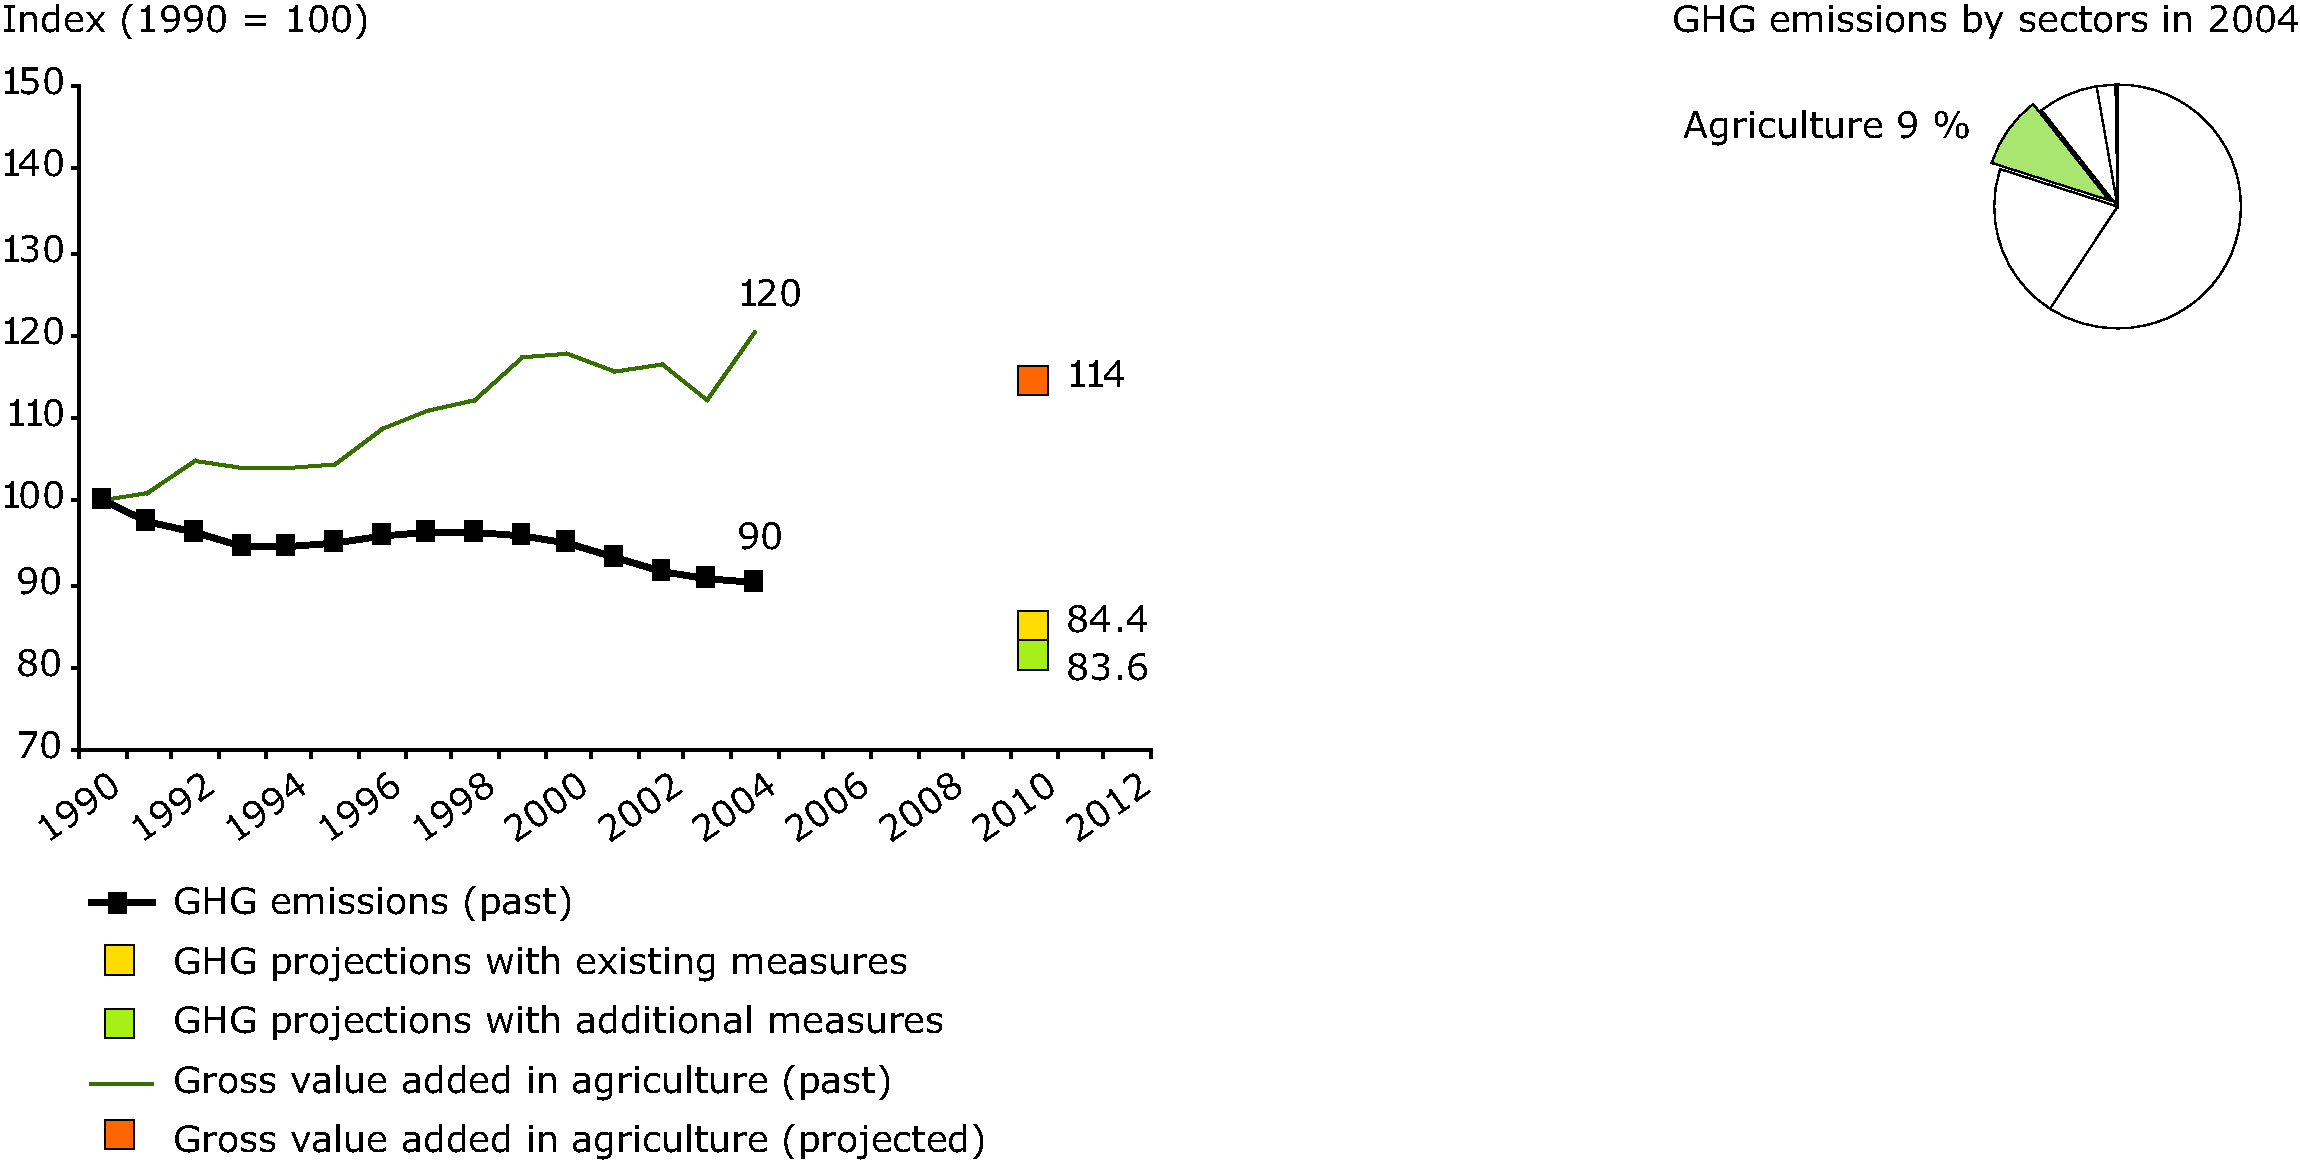 EU-15 past and projected greenhouse gas emissions from agriculture and gross value added